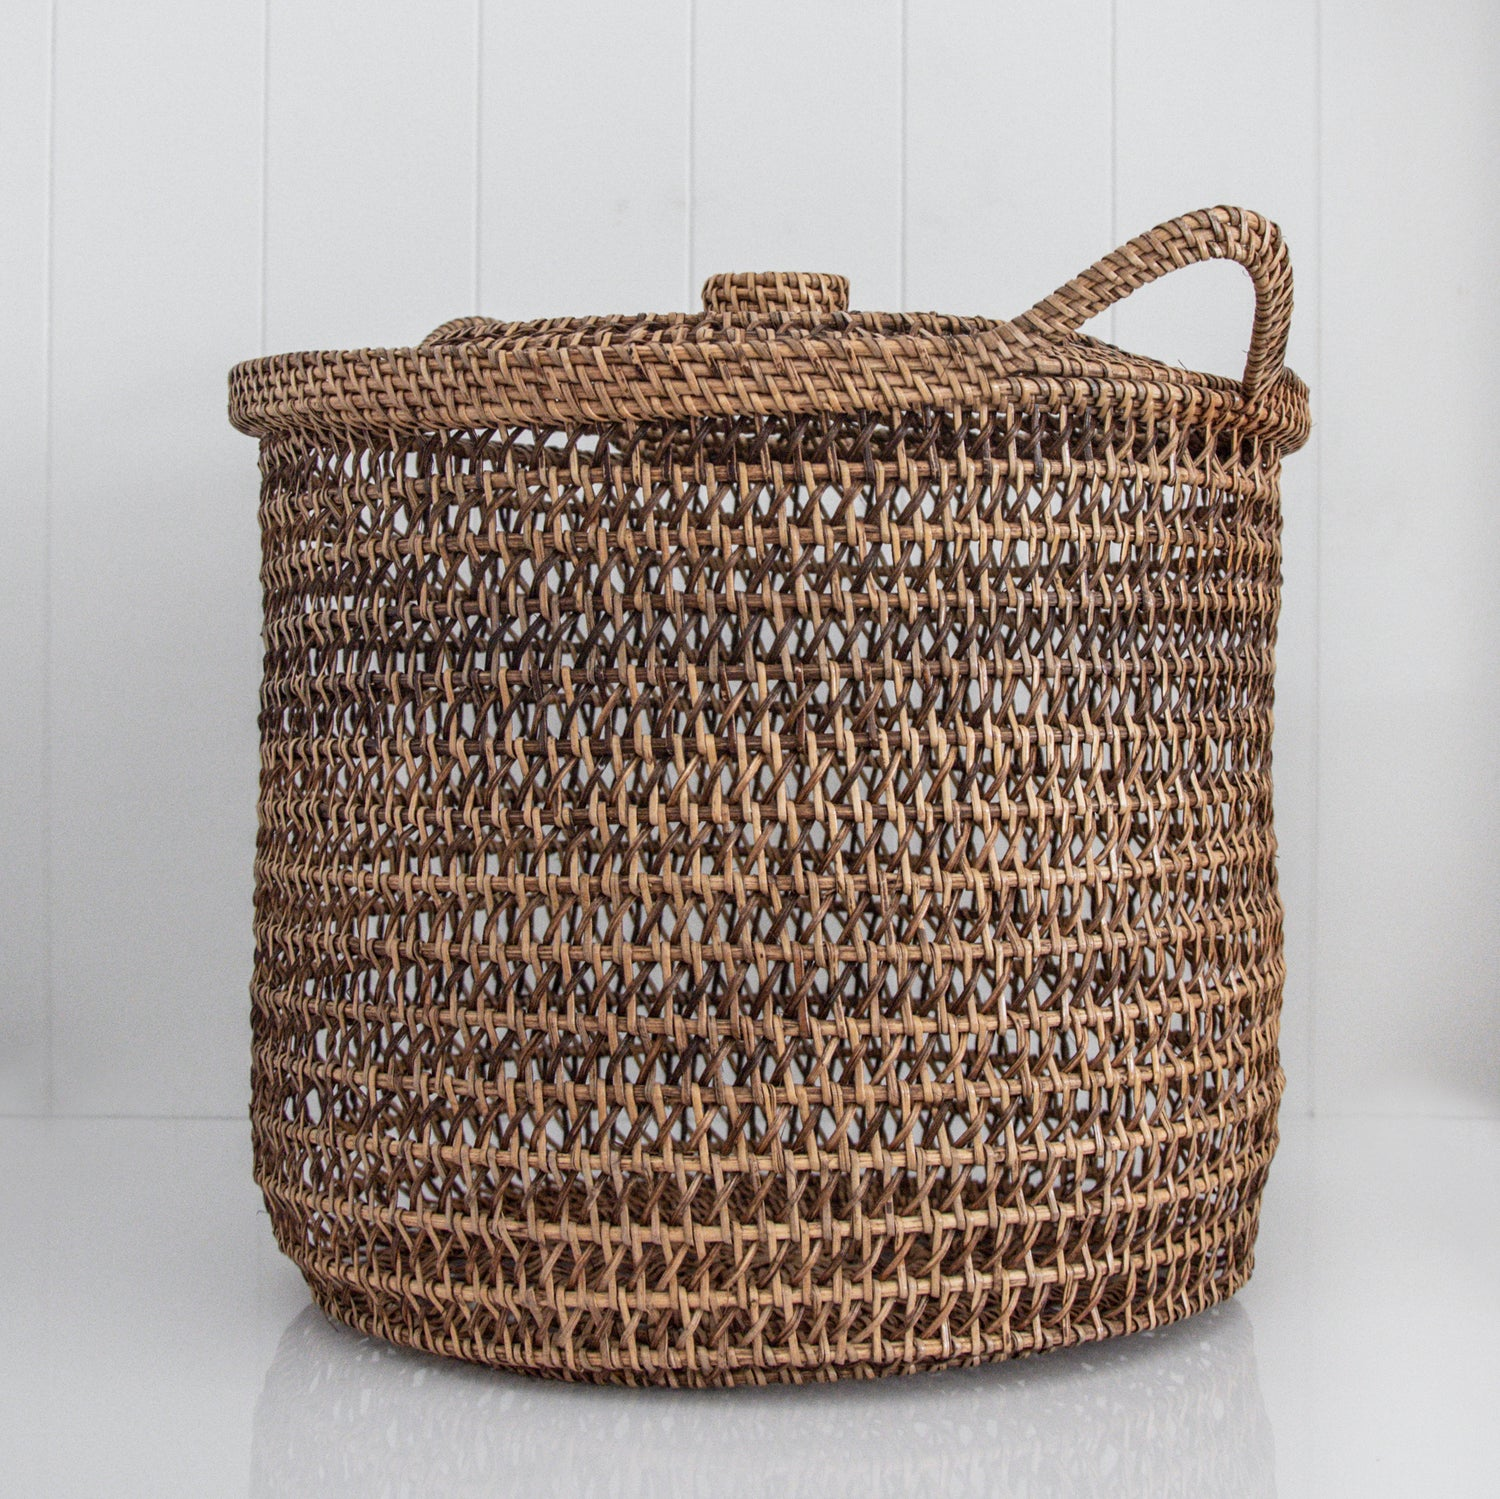 RATTAN BASKET WITH LID / NATURAL / TWO SIZES